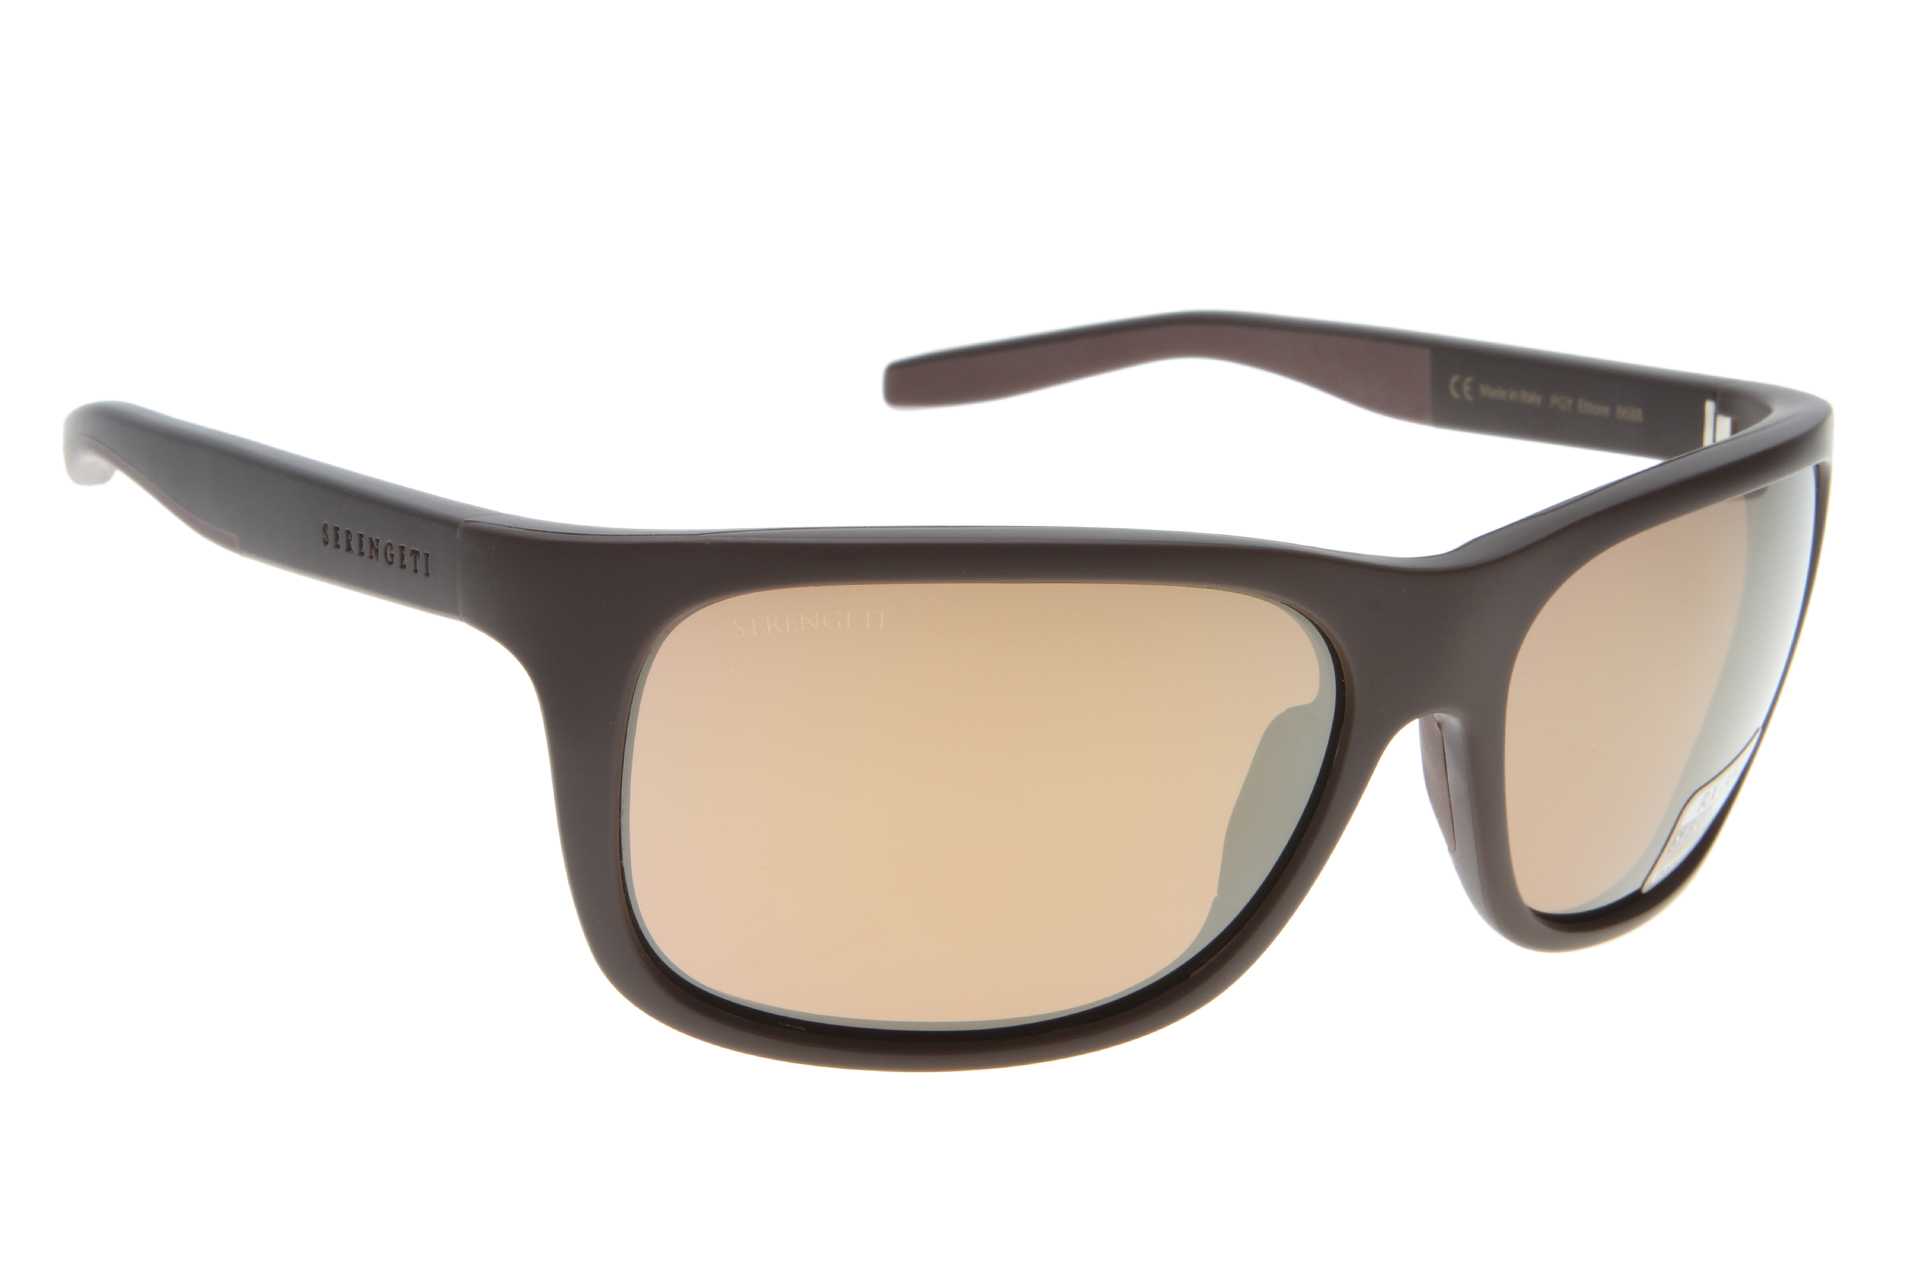 Serengeti Ettore 8688 (Sanded Brown/Dark Brown) Gepolariseerd, Spiegelcoating